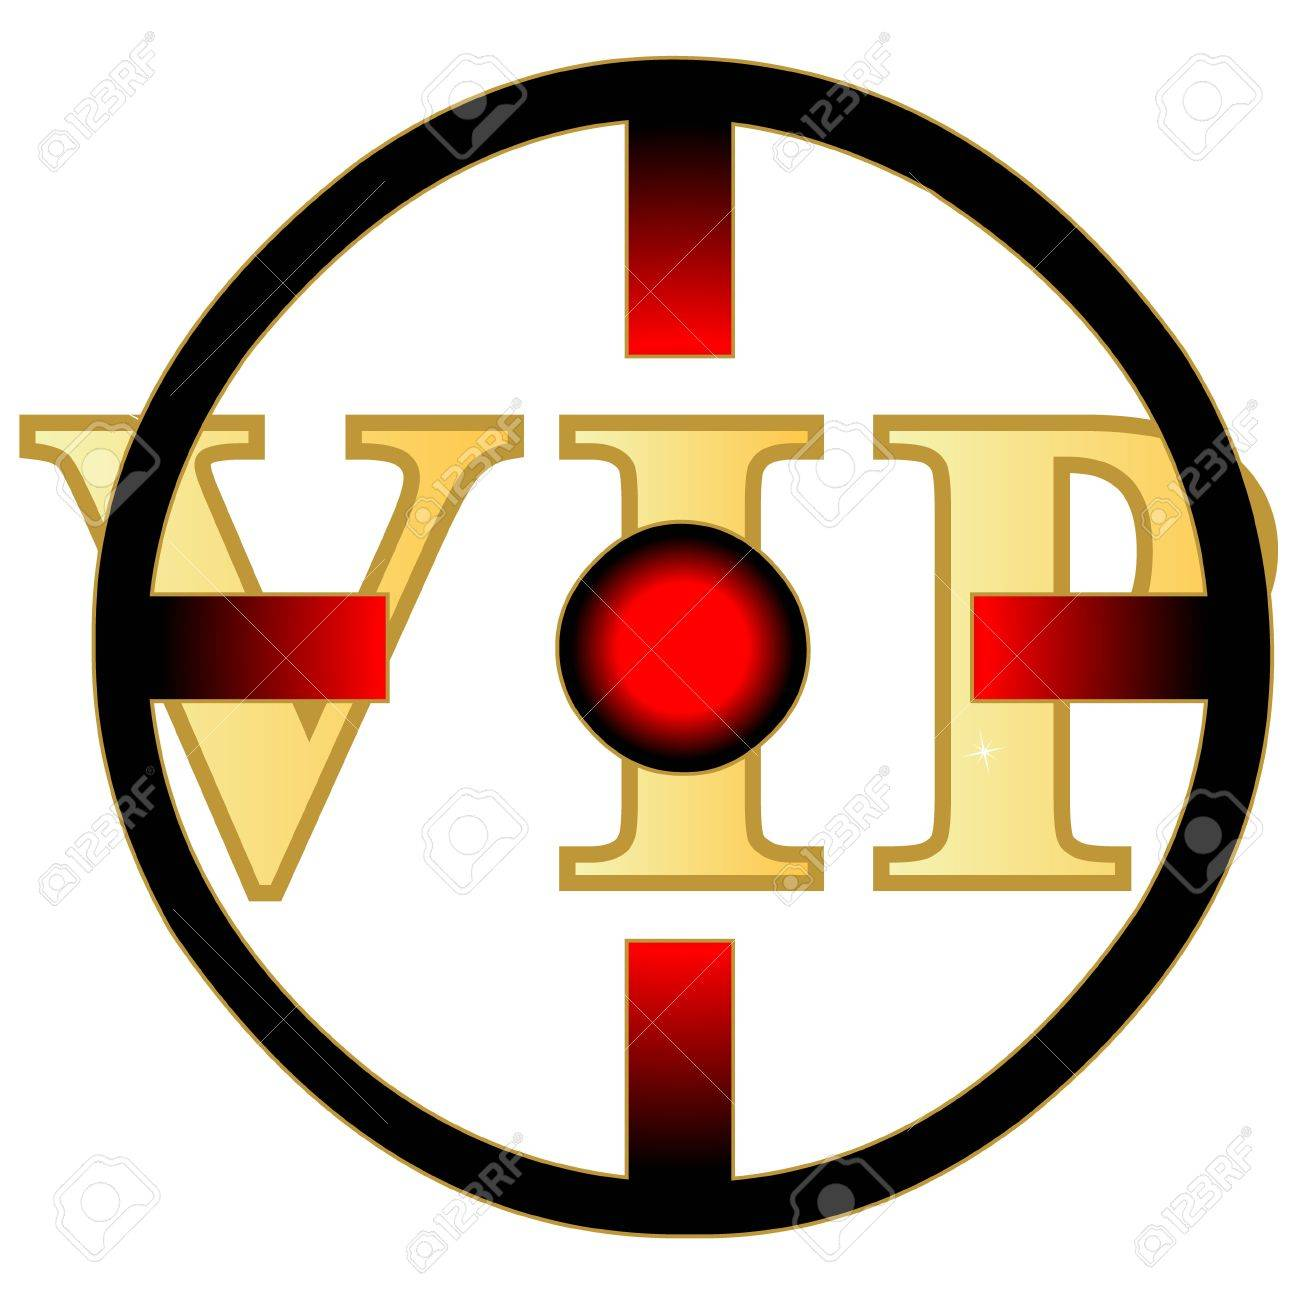 Vip under the red eye on white background Stock Vector - 17744202